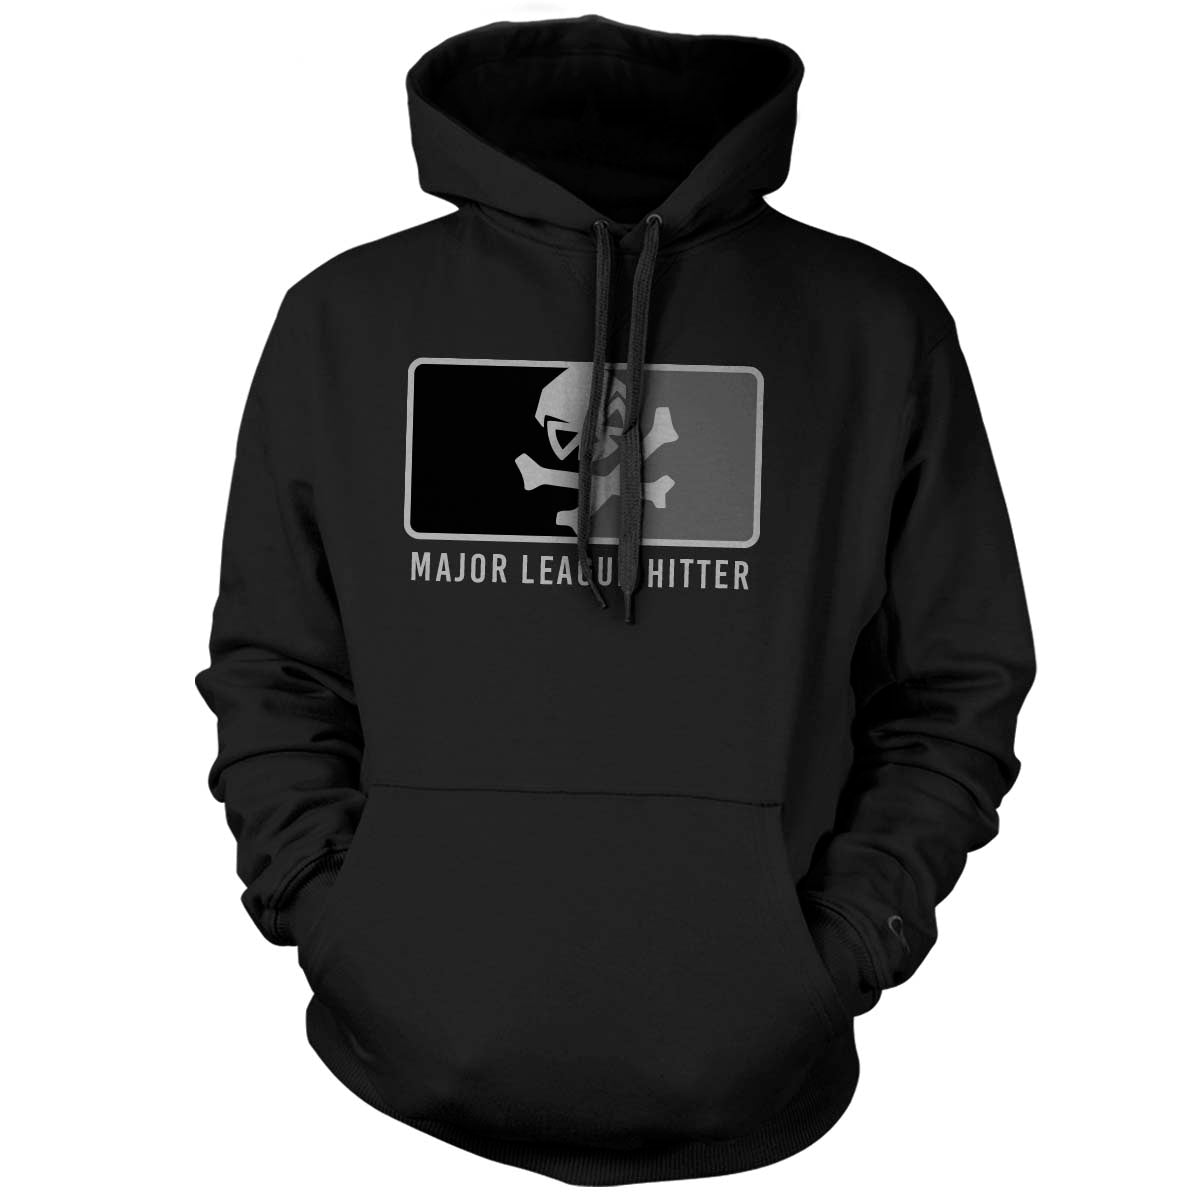 Major League Hitter - Hoodie - Black/Subdued - T-Shirts - Pipe Hitters Union